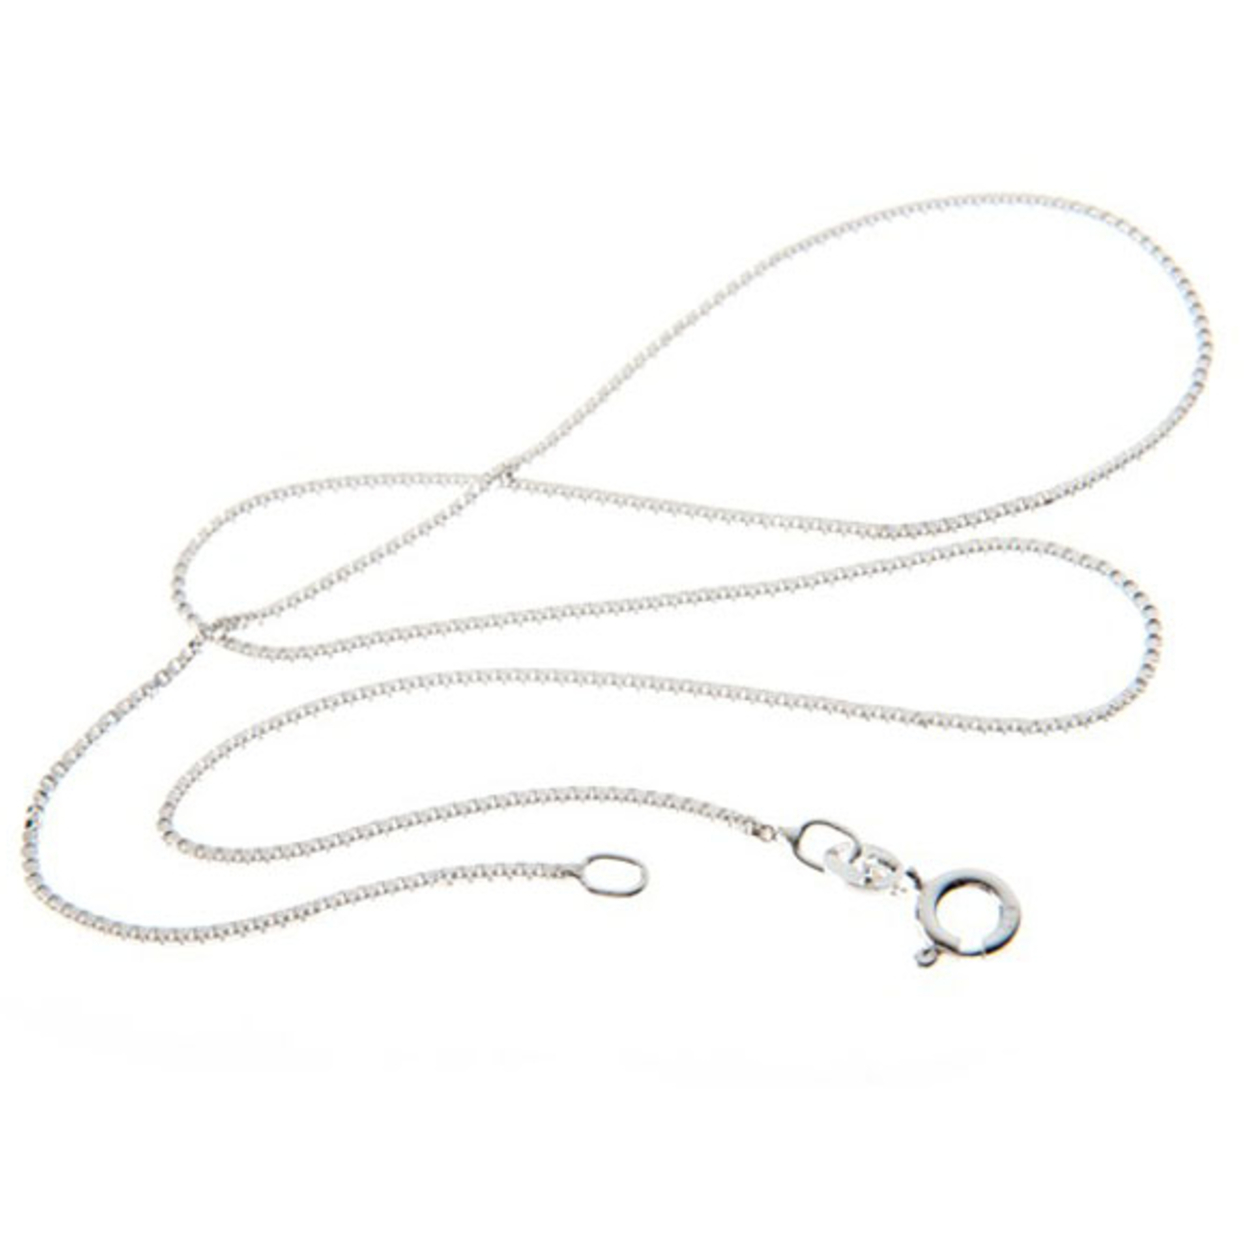 """Italian Sterling Silver Chains 16\"""" To 30\"""" In 5 Designs Box, 16"""